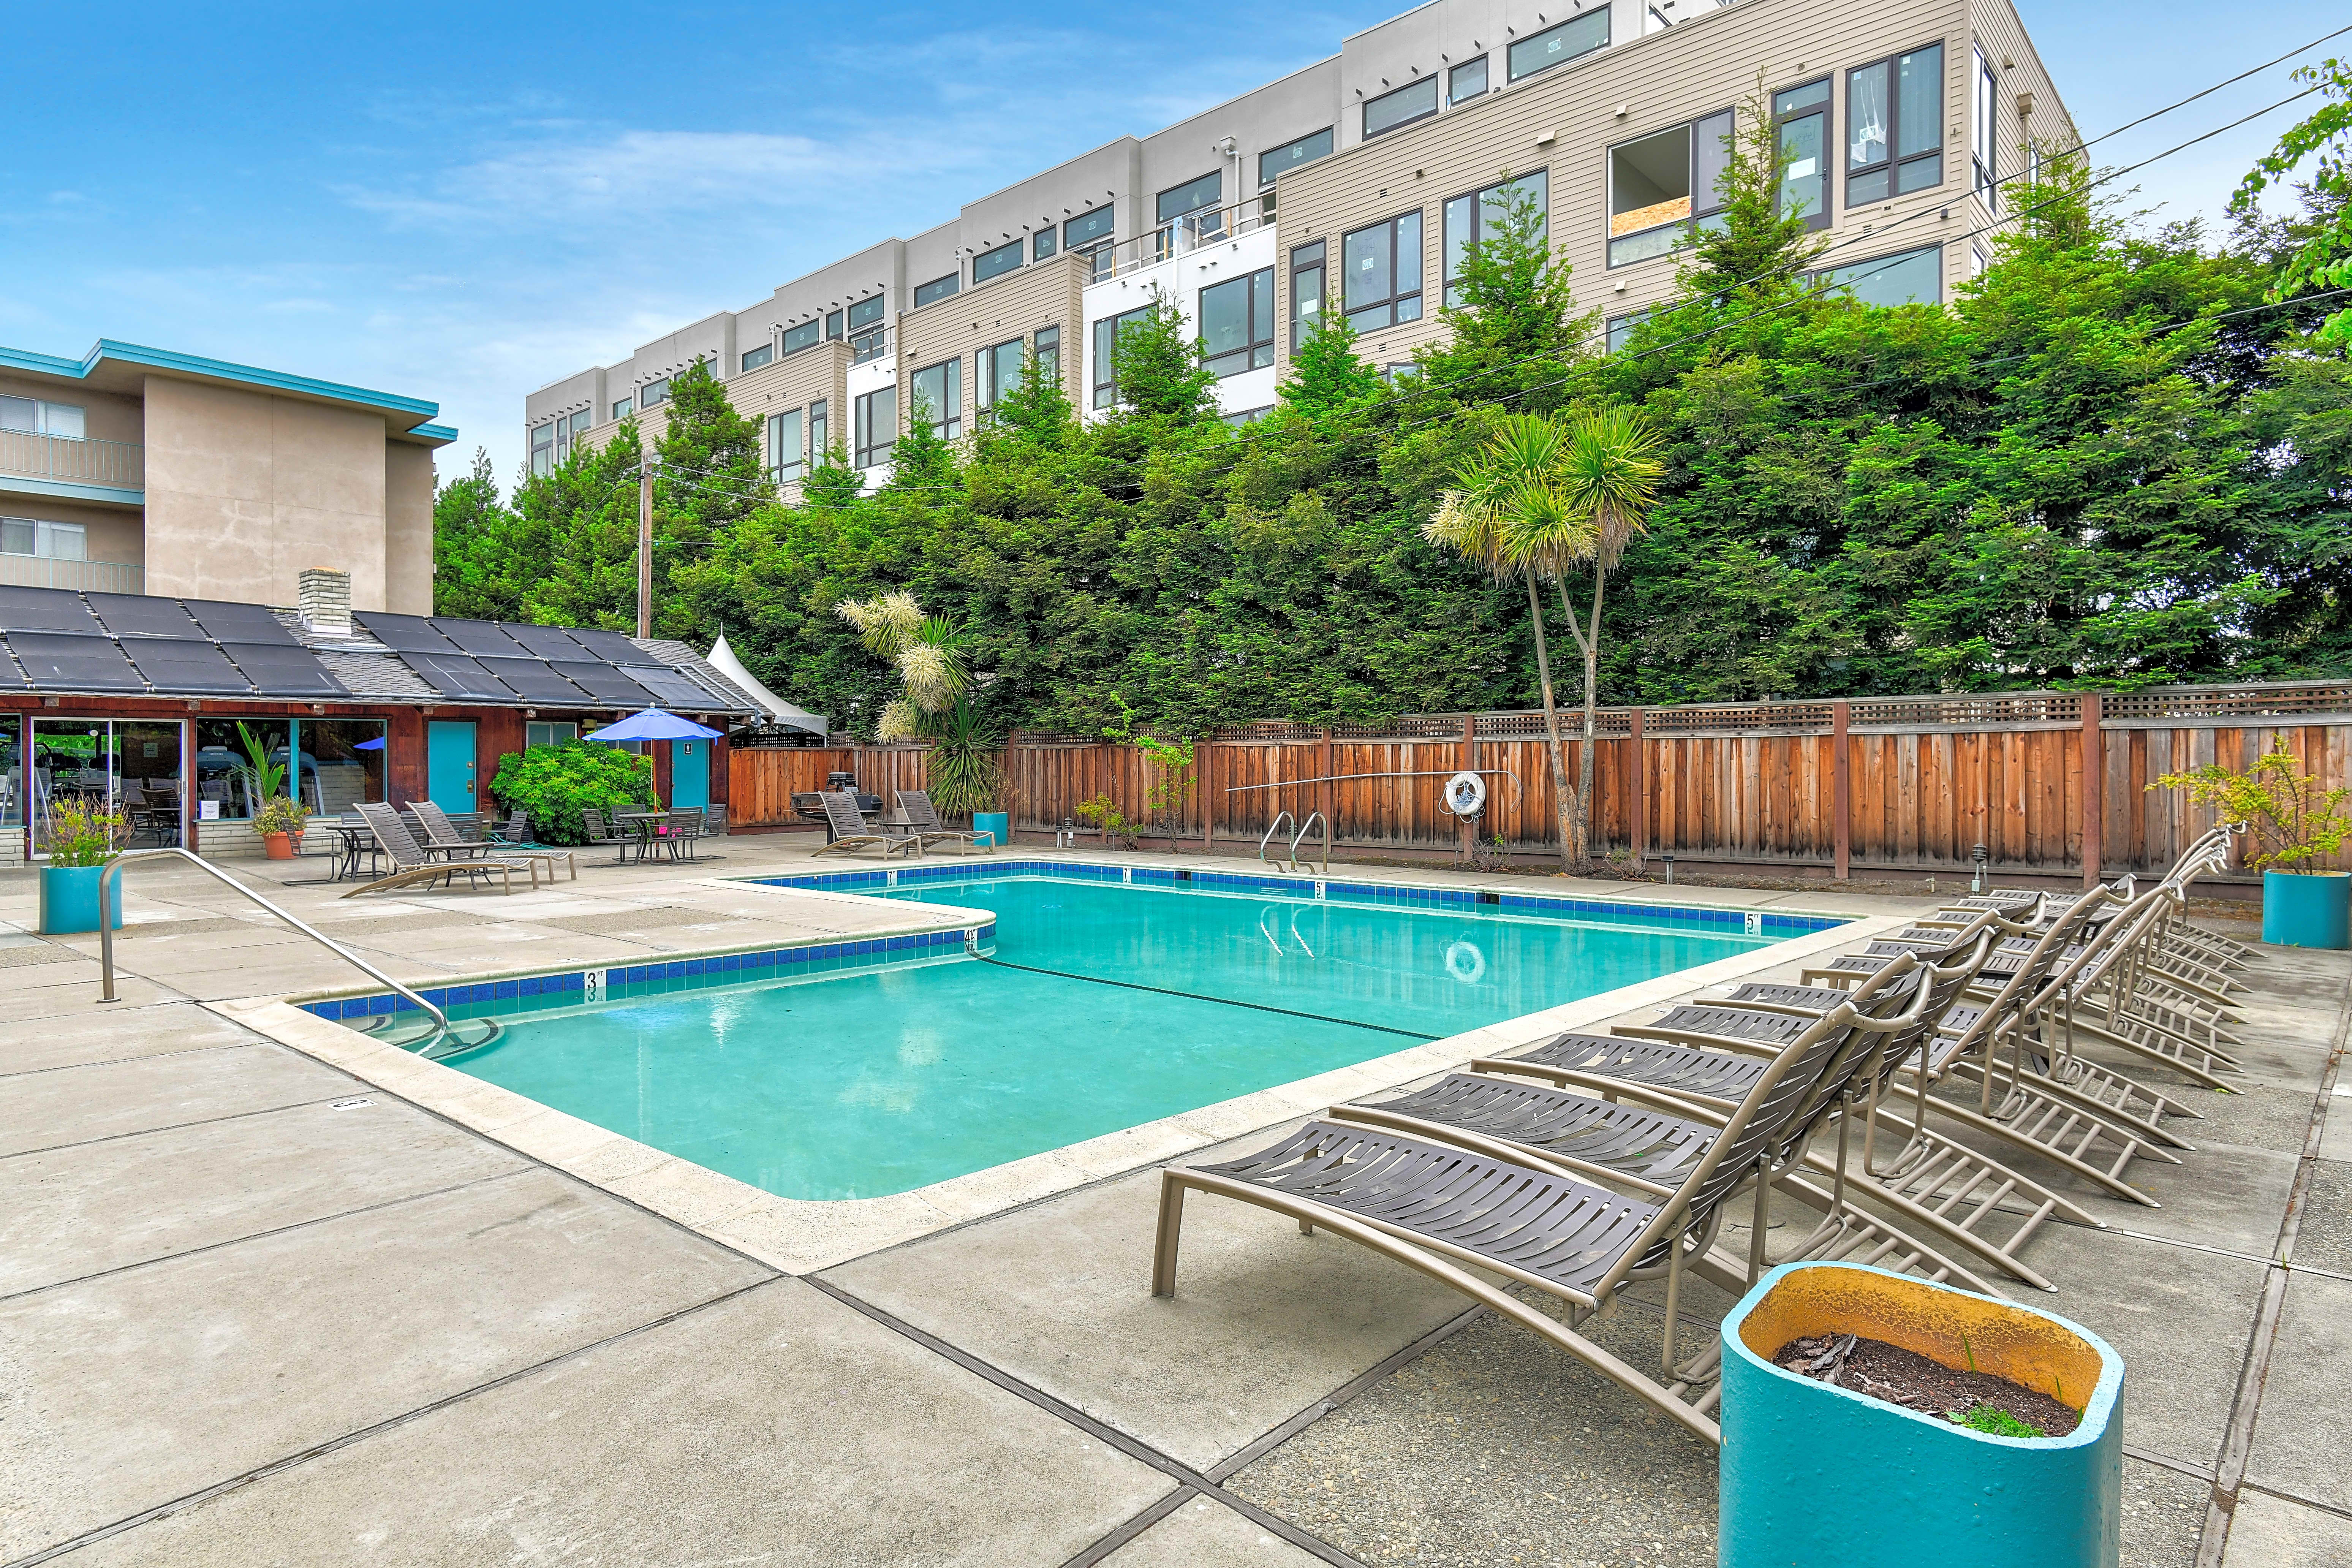 Apartments Near Stanford Fayette Arms *ONE MONTH FREE* for Stanford University Students in Stanford, CA